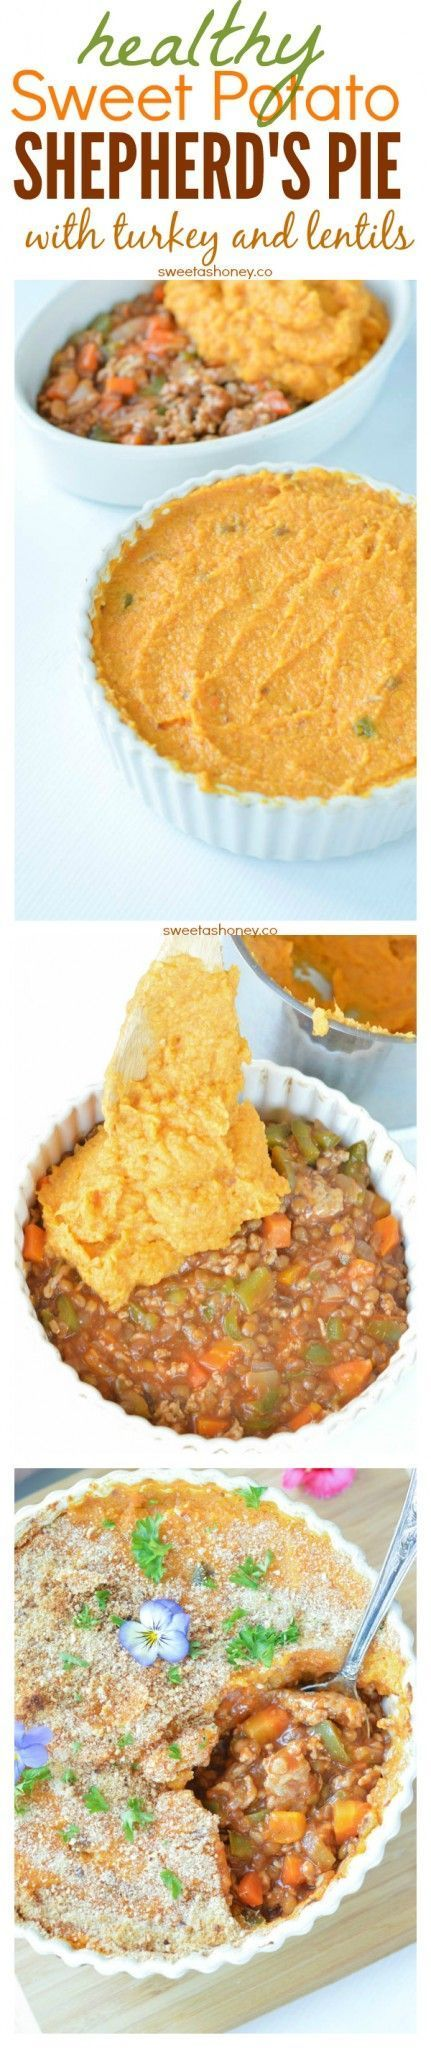 Healthy Sweet Potato Shepherd's Pie. Healthy way to use Thanksgiving Leftover or an healthy New Year recipe. Easy, Clean Eating Comfort food for families dinners. Dairy free. Gluten free.